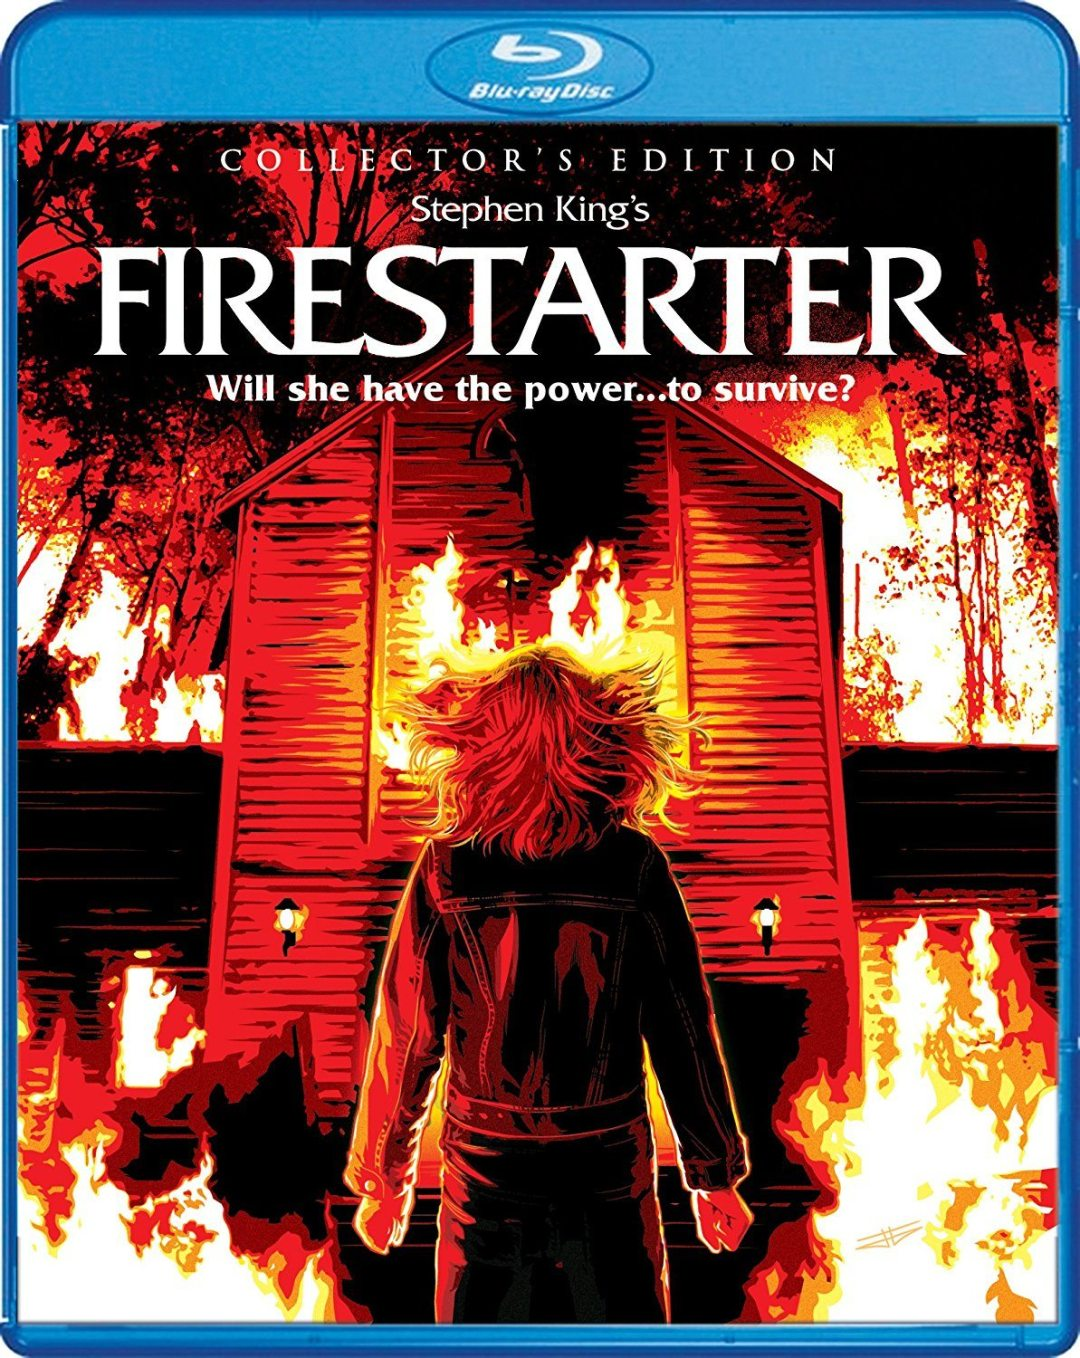 Firestarter – Blue-ray/DVD Review